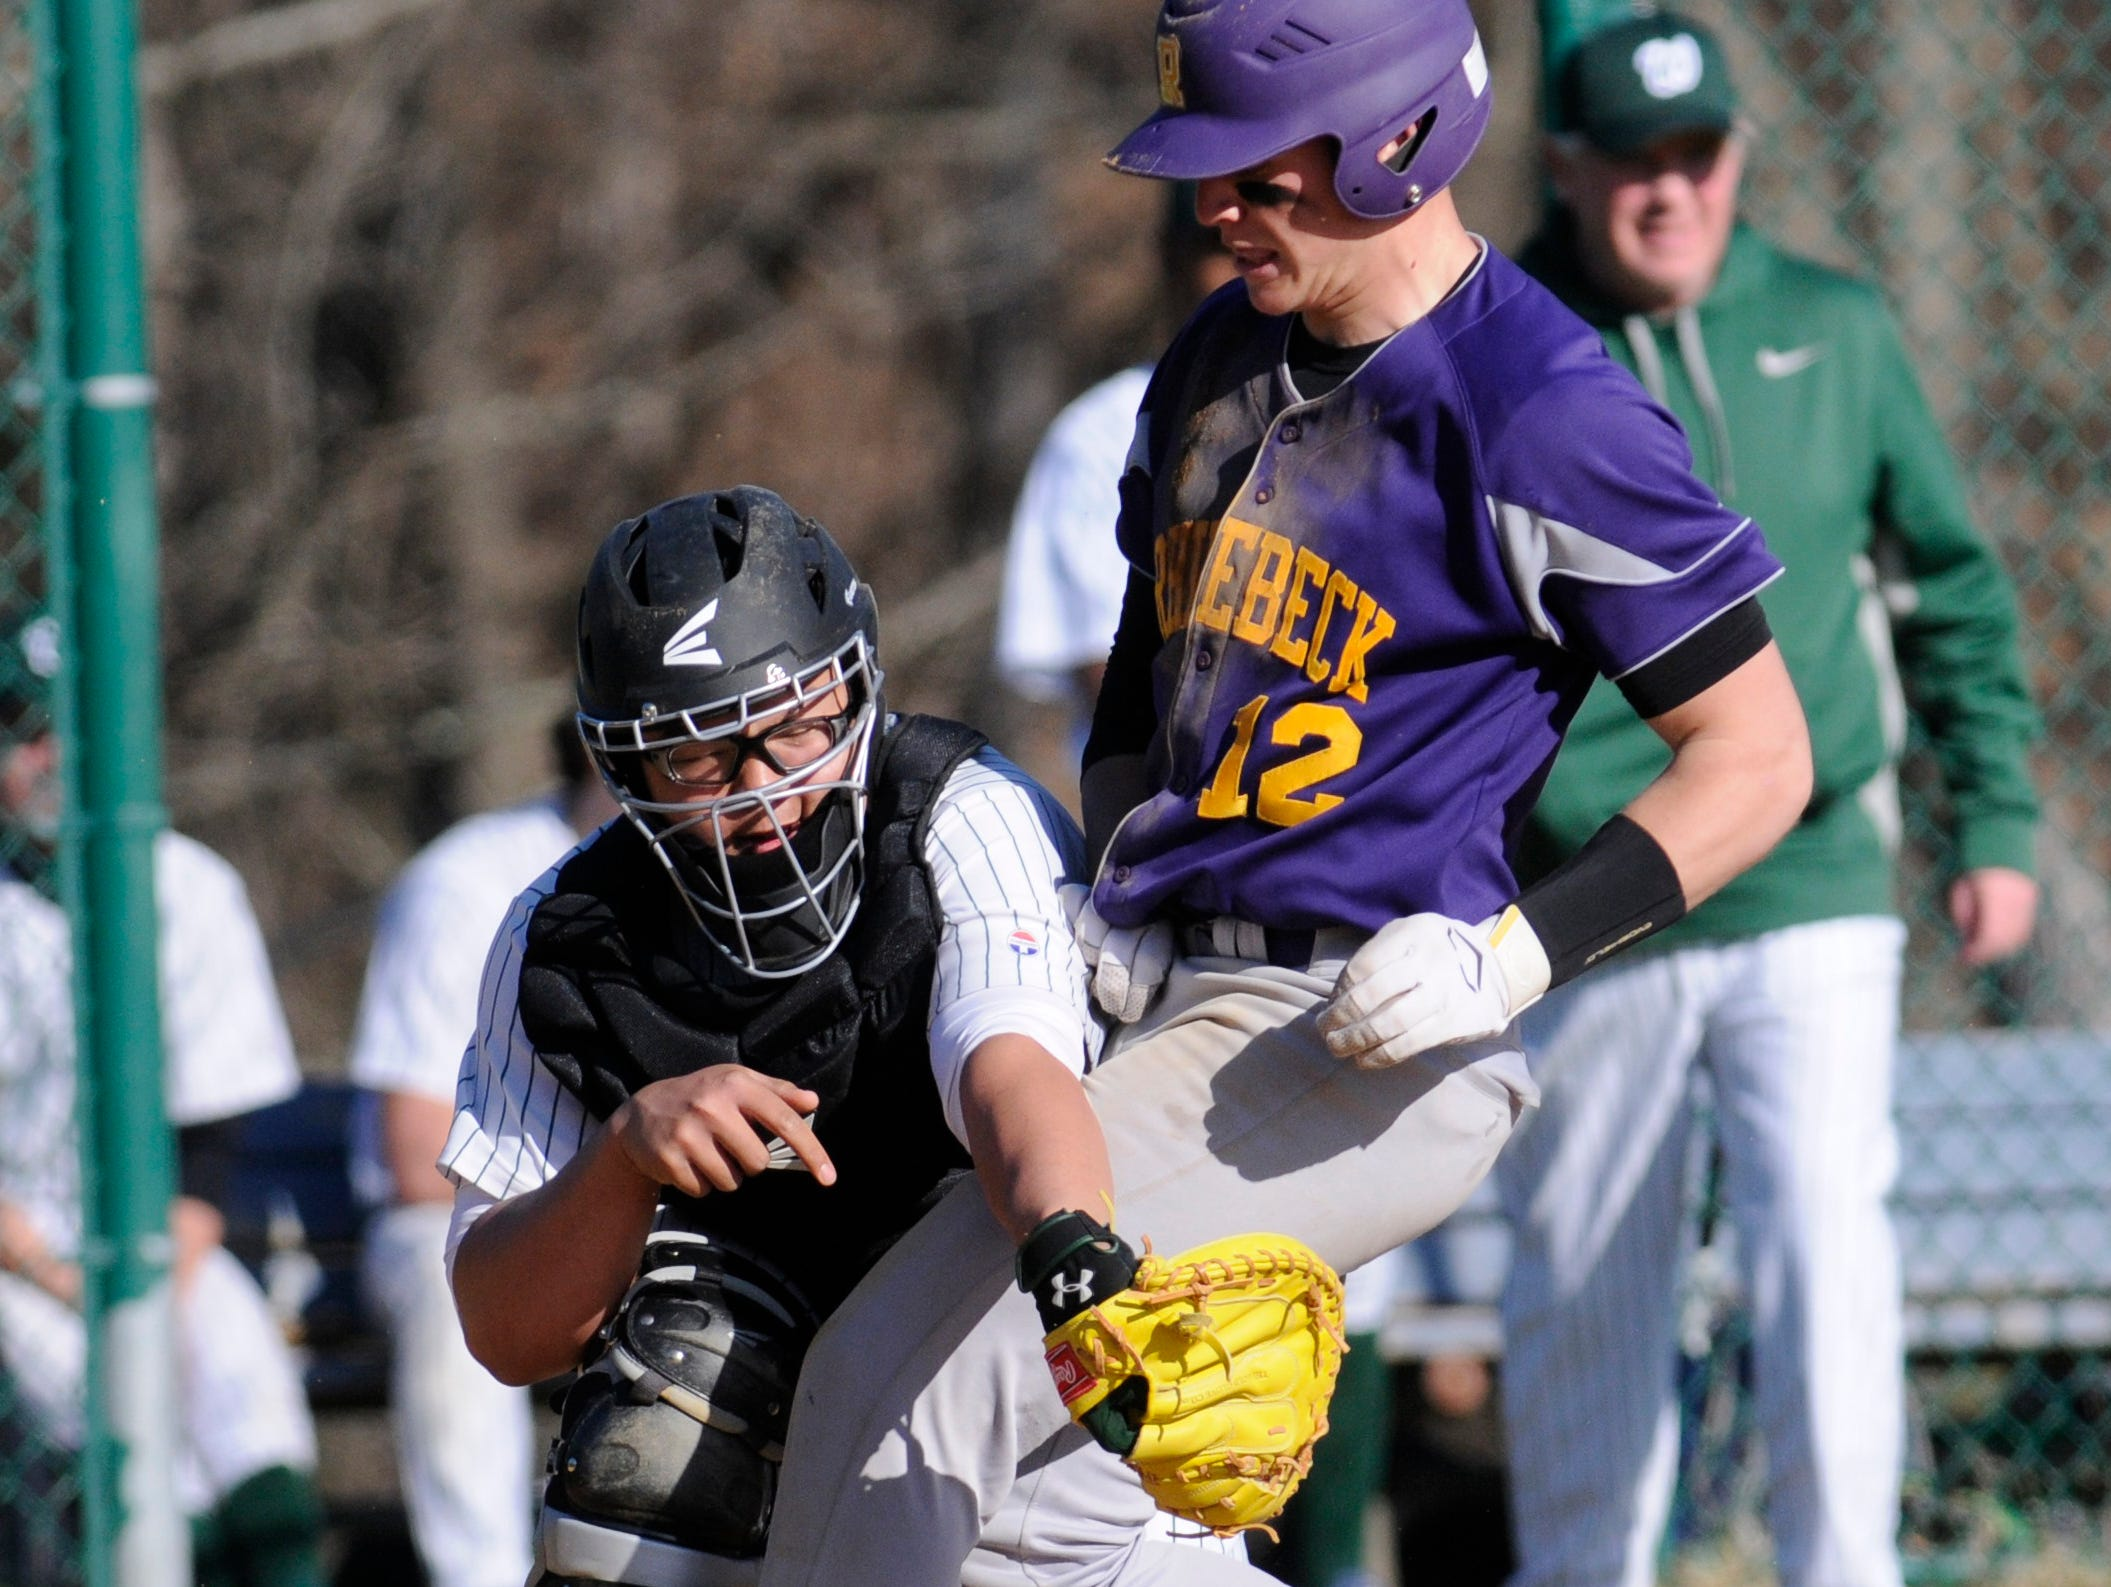 Rhinebeck's Spencer Hutchins collides with Webutuck's catcher, Ethan Lounsbury during Wednesday's game at Rhinebeck.